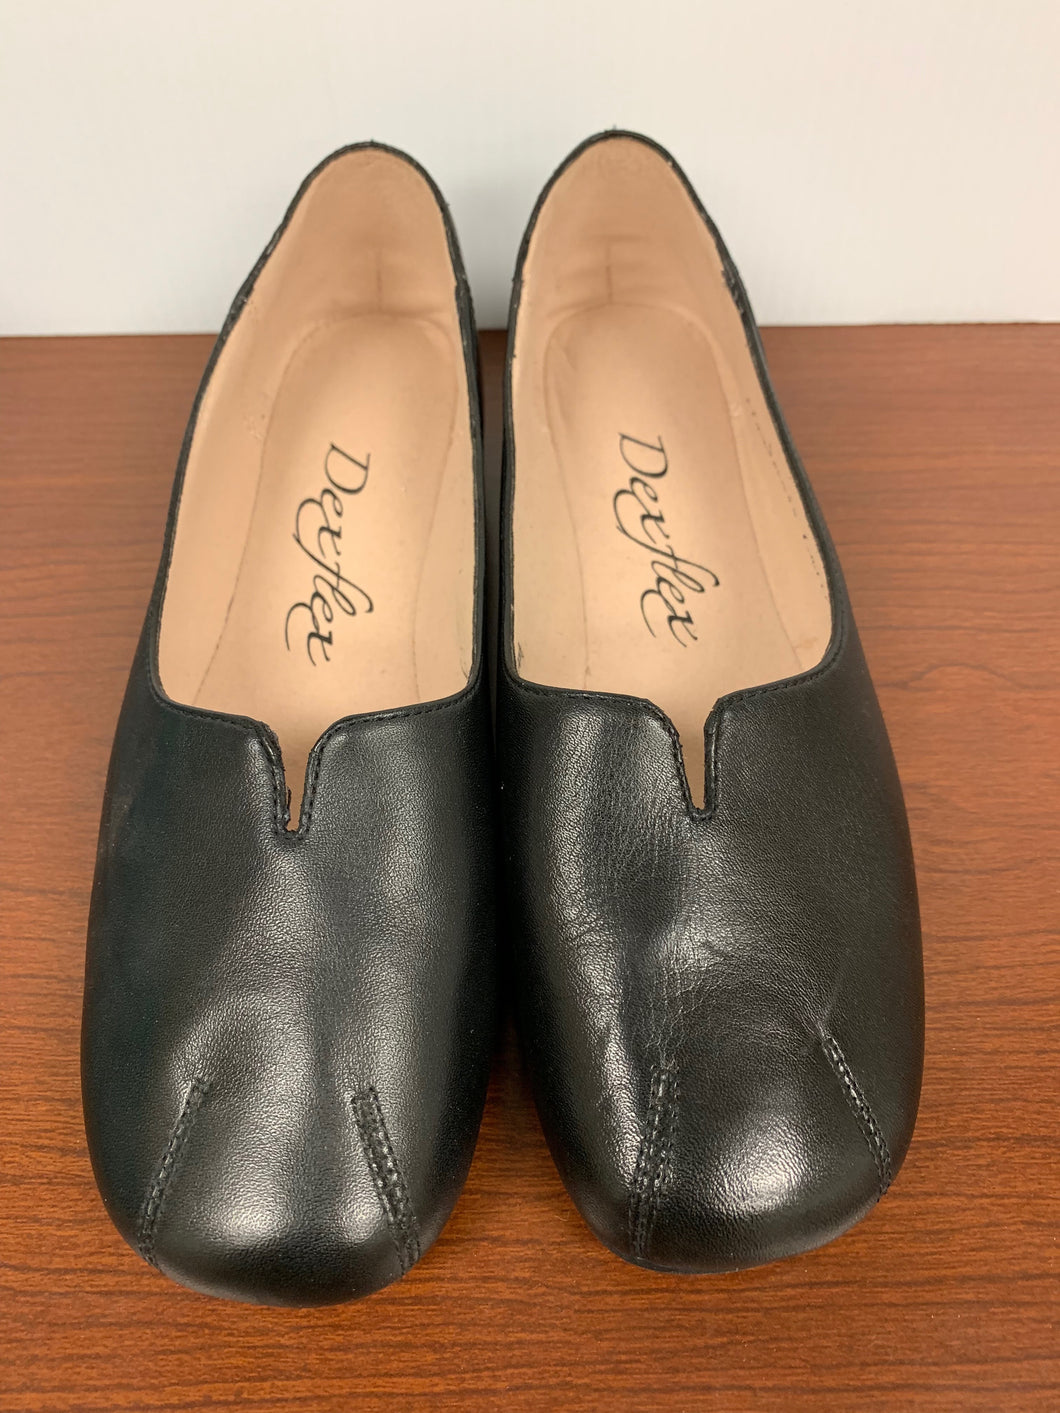 NEW Dexflex Black Handmade Entirely Shoes size 6.5